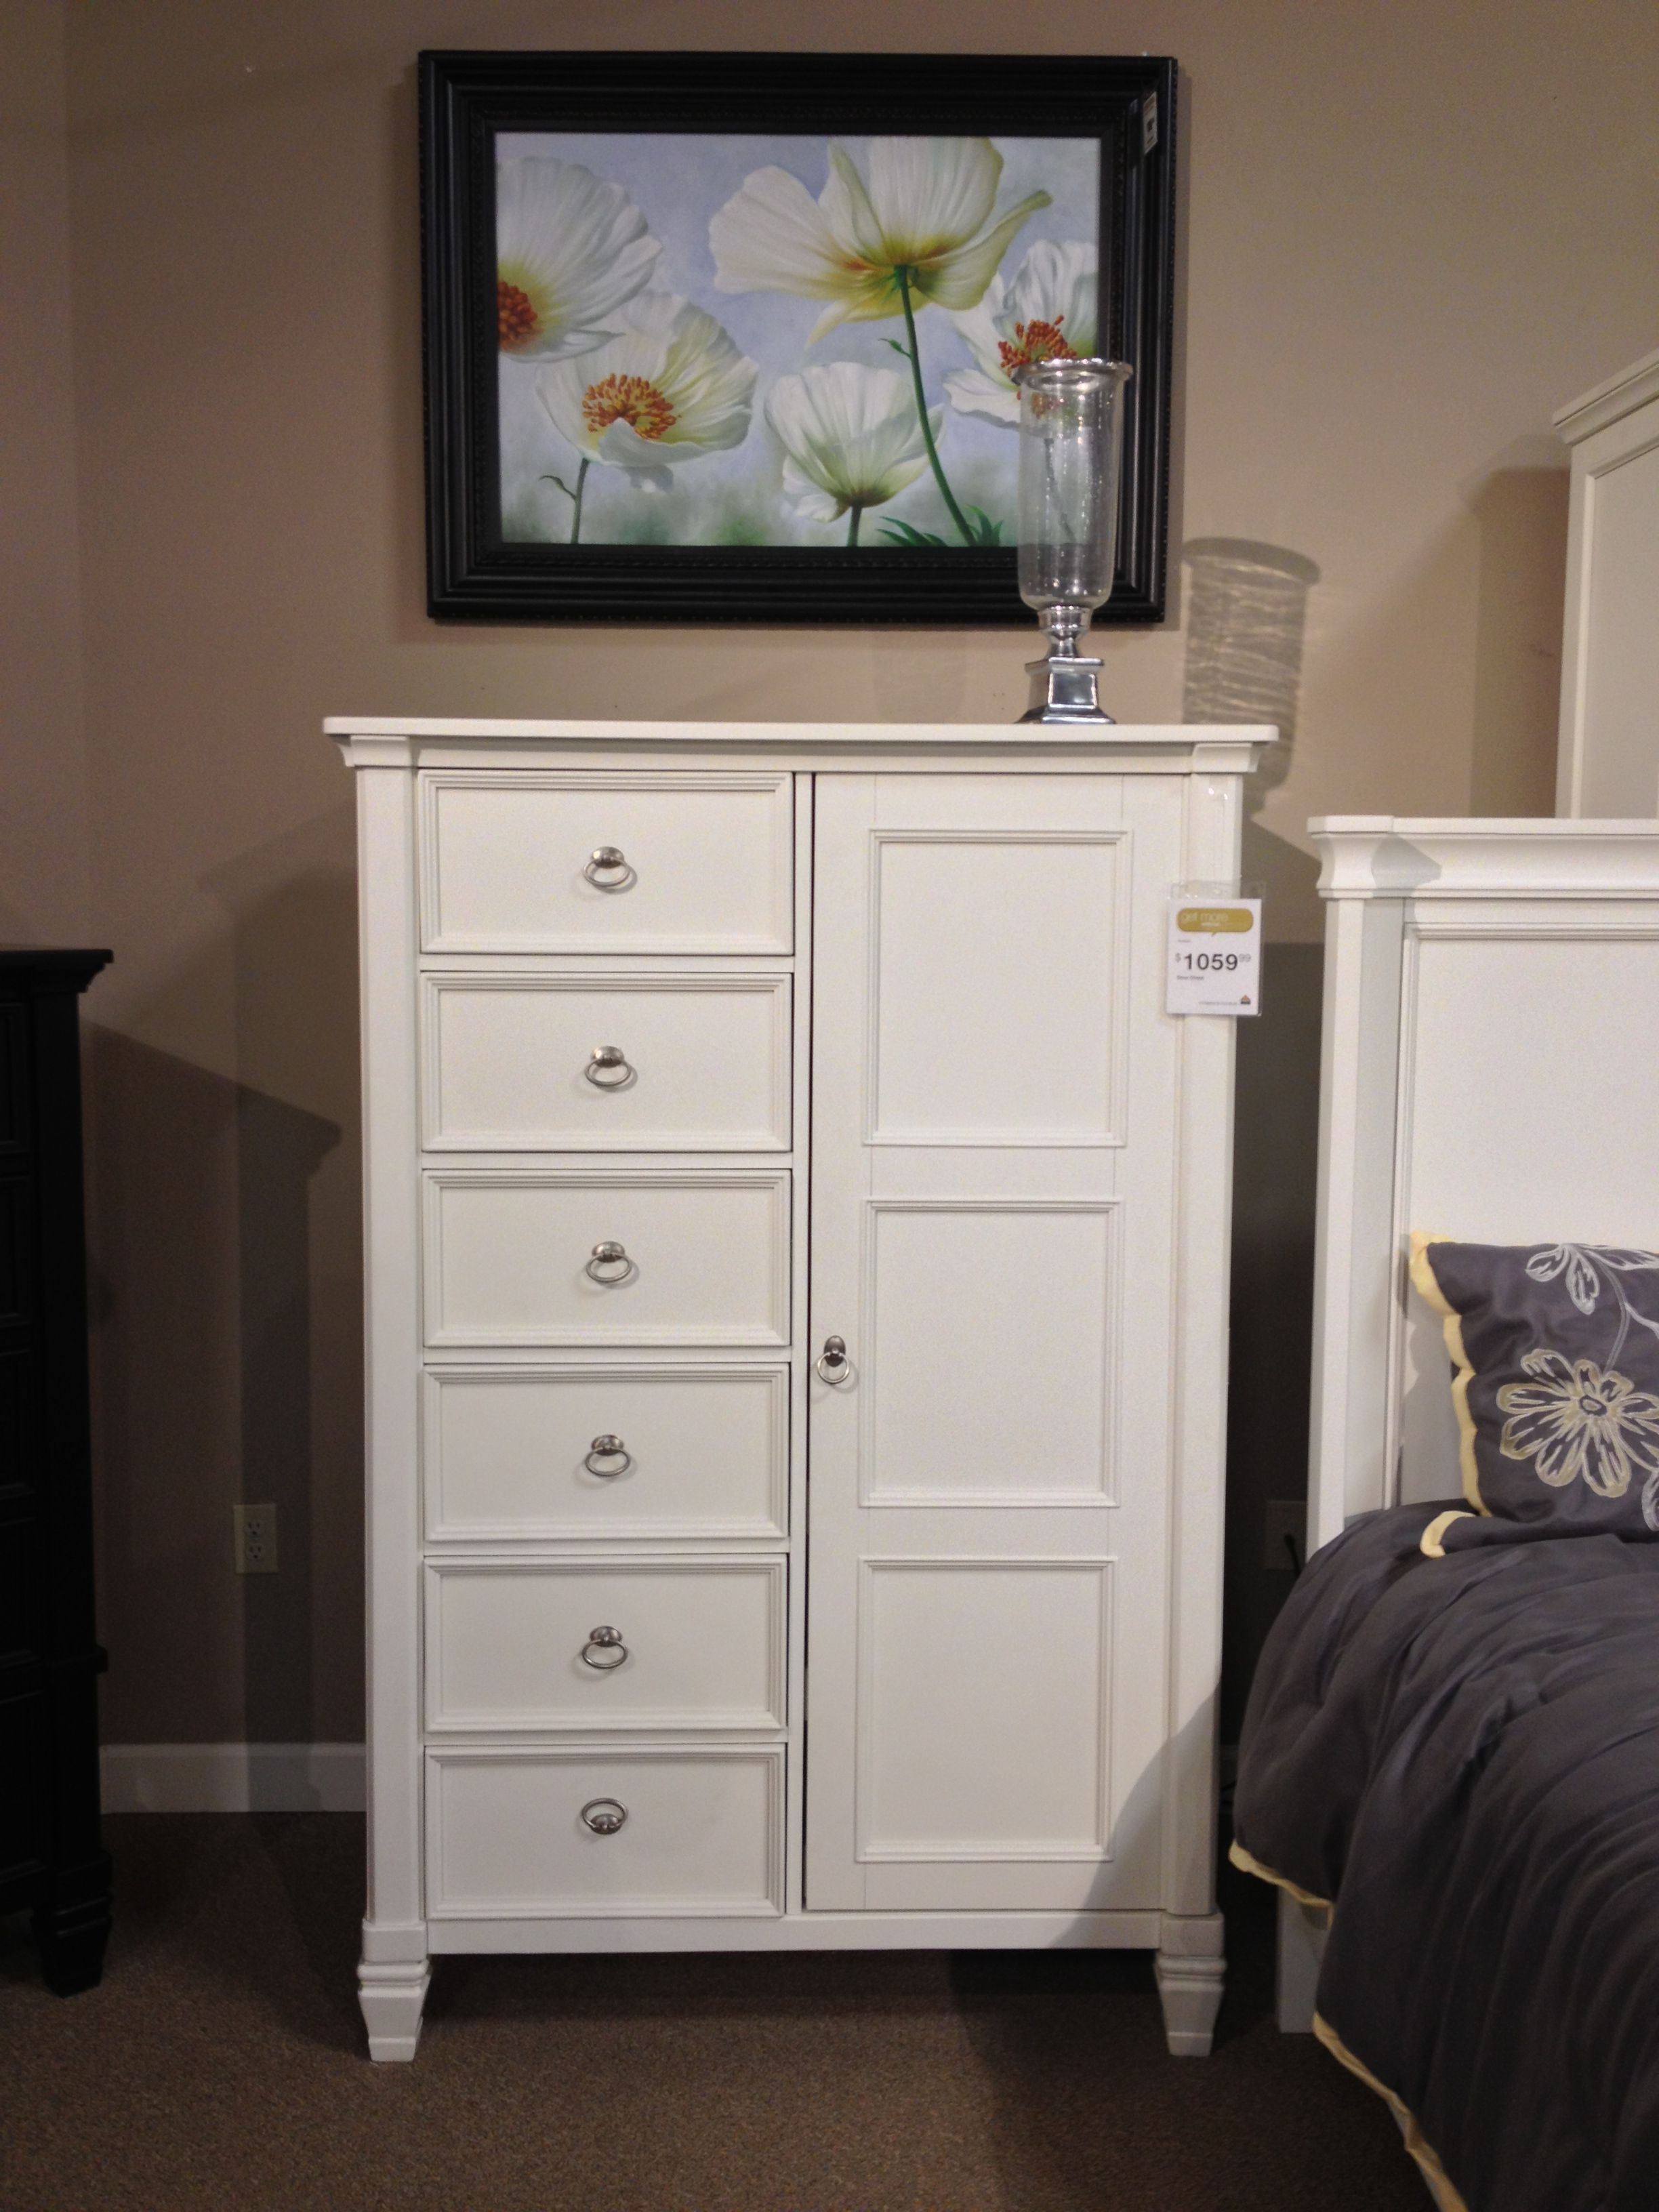 Prentice Door #Chest At Ashley #Furniture In #TriCities